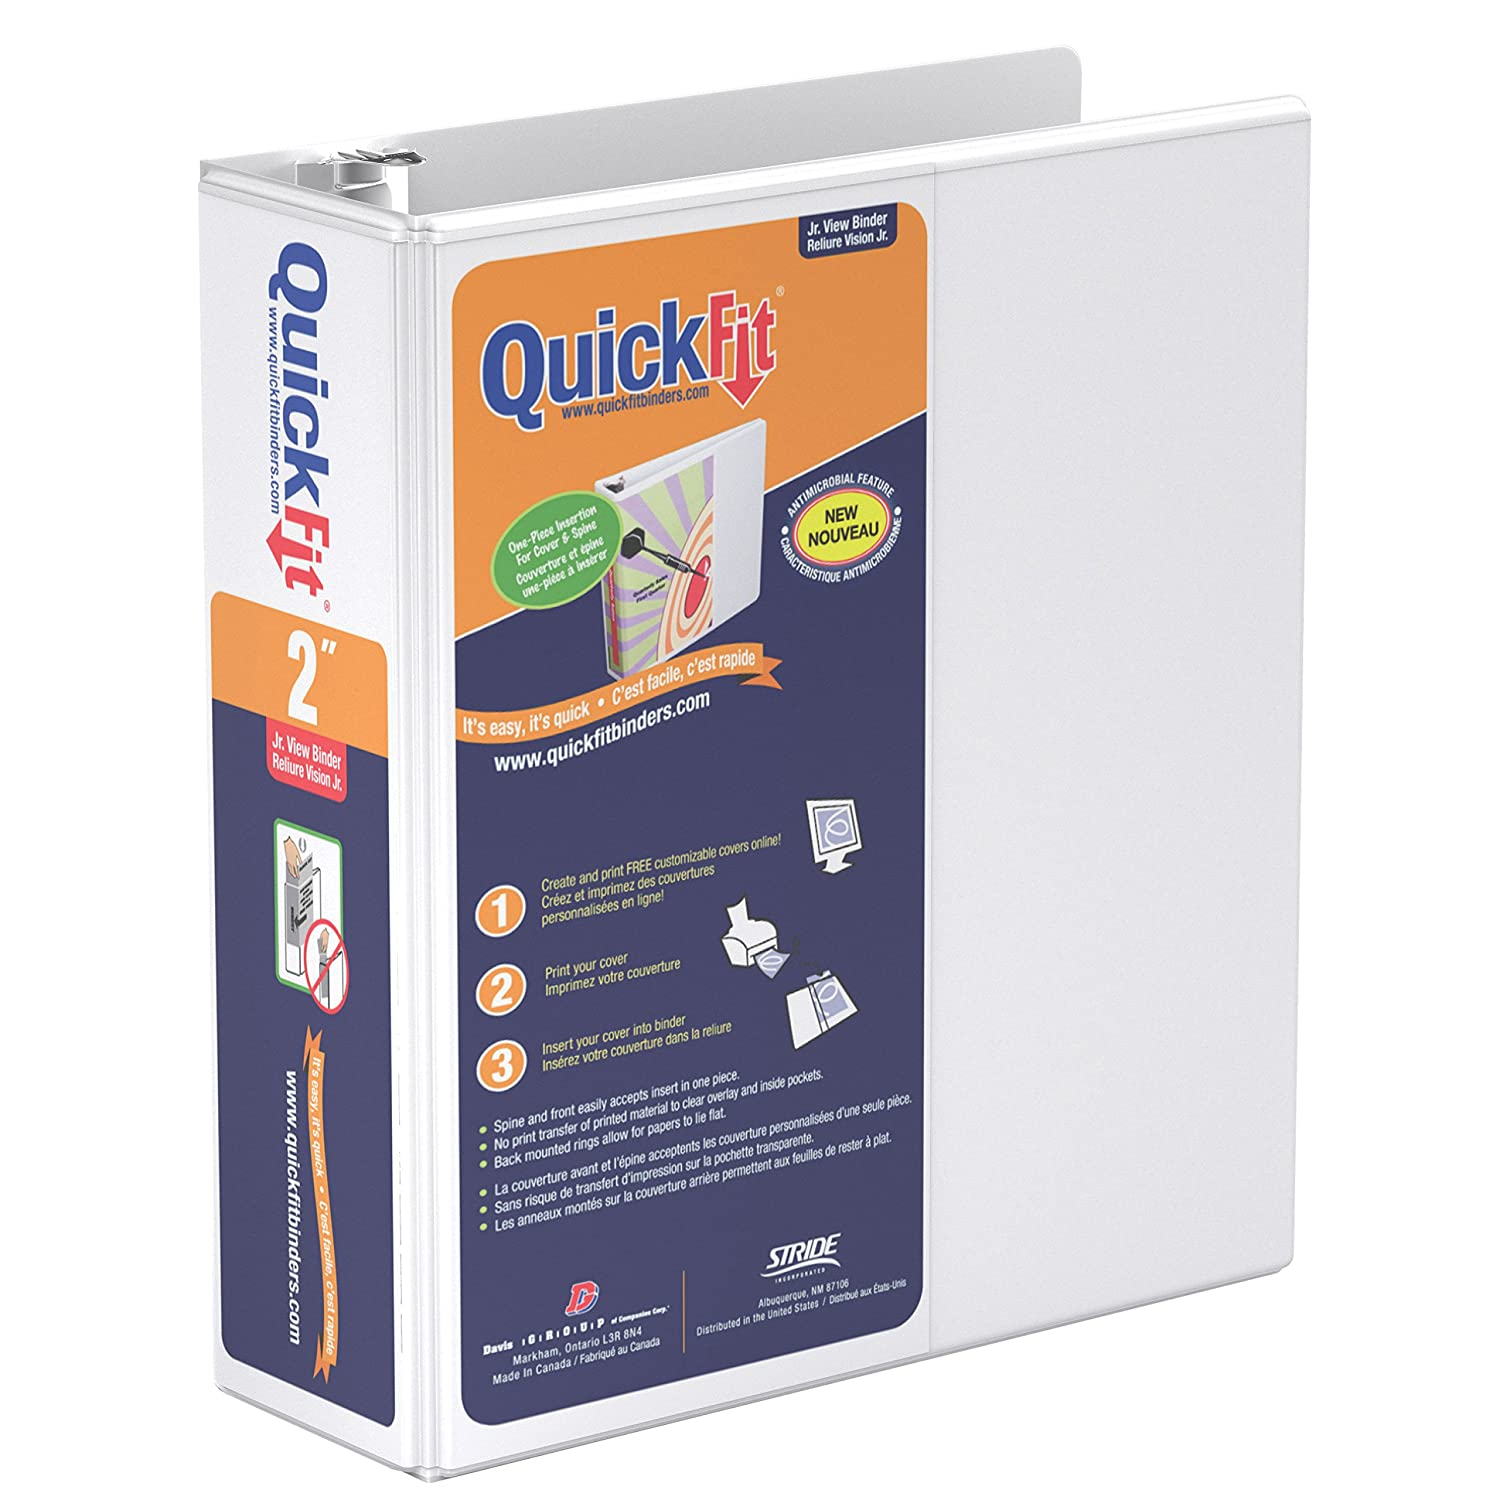 QuickFit Antimicrobial Round Ring Binder - 2 Binder Capacity - 5 1/2 x 8 1/2 Sheet Size - Round Ring Fastener - 2 Internal Pocket(s) - White - Recycled - 1 Each S.P. Richards CA 85130